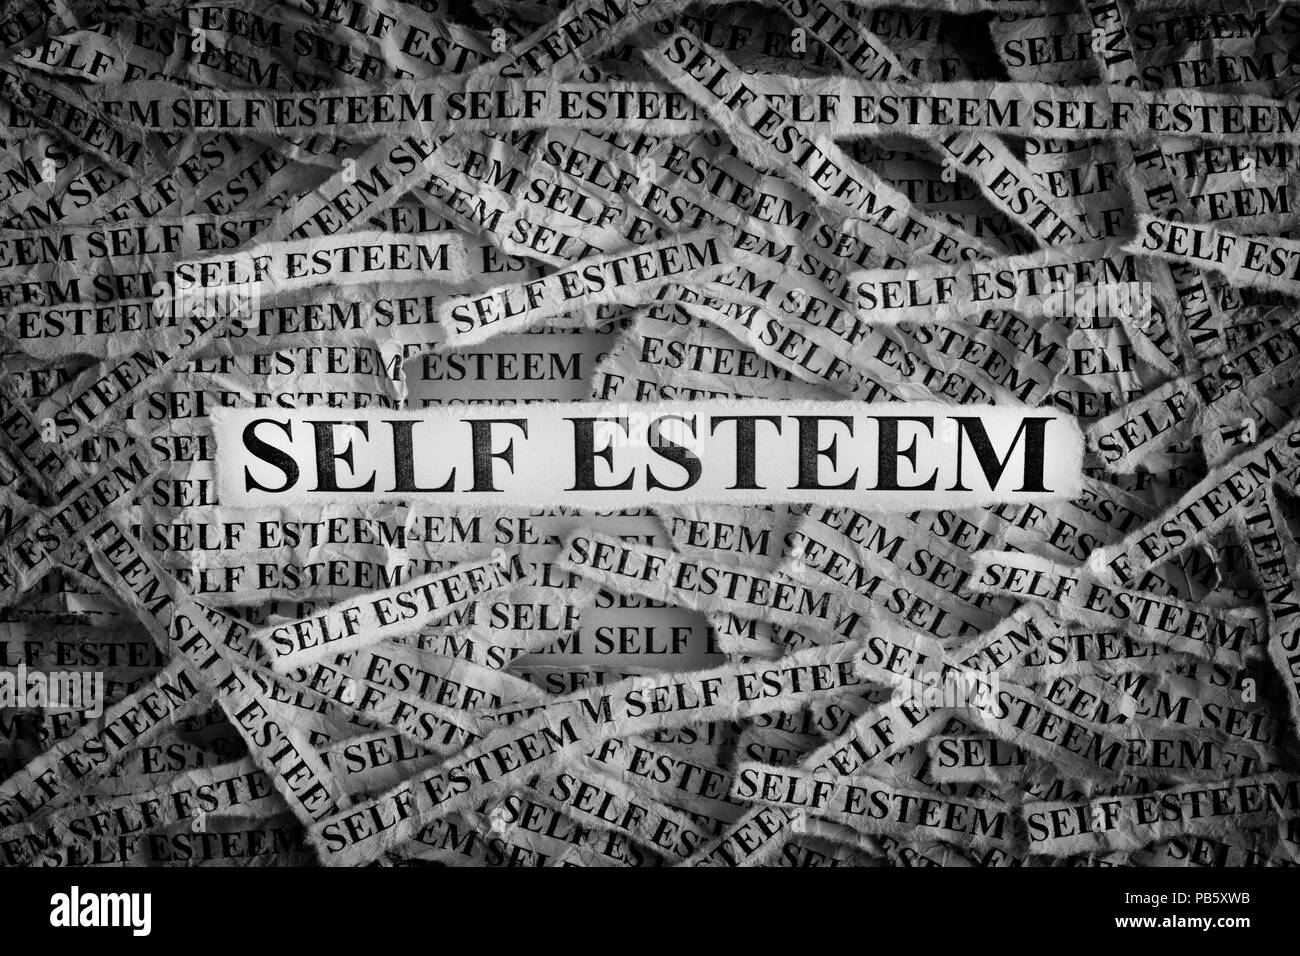 Self Esteem. Torn pieces of paper with the words Self Esteem. Concept Image. Black and White. Closeup. - Stock Image